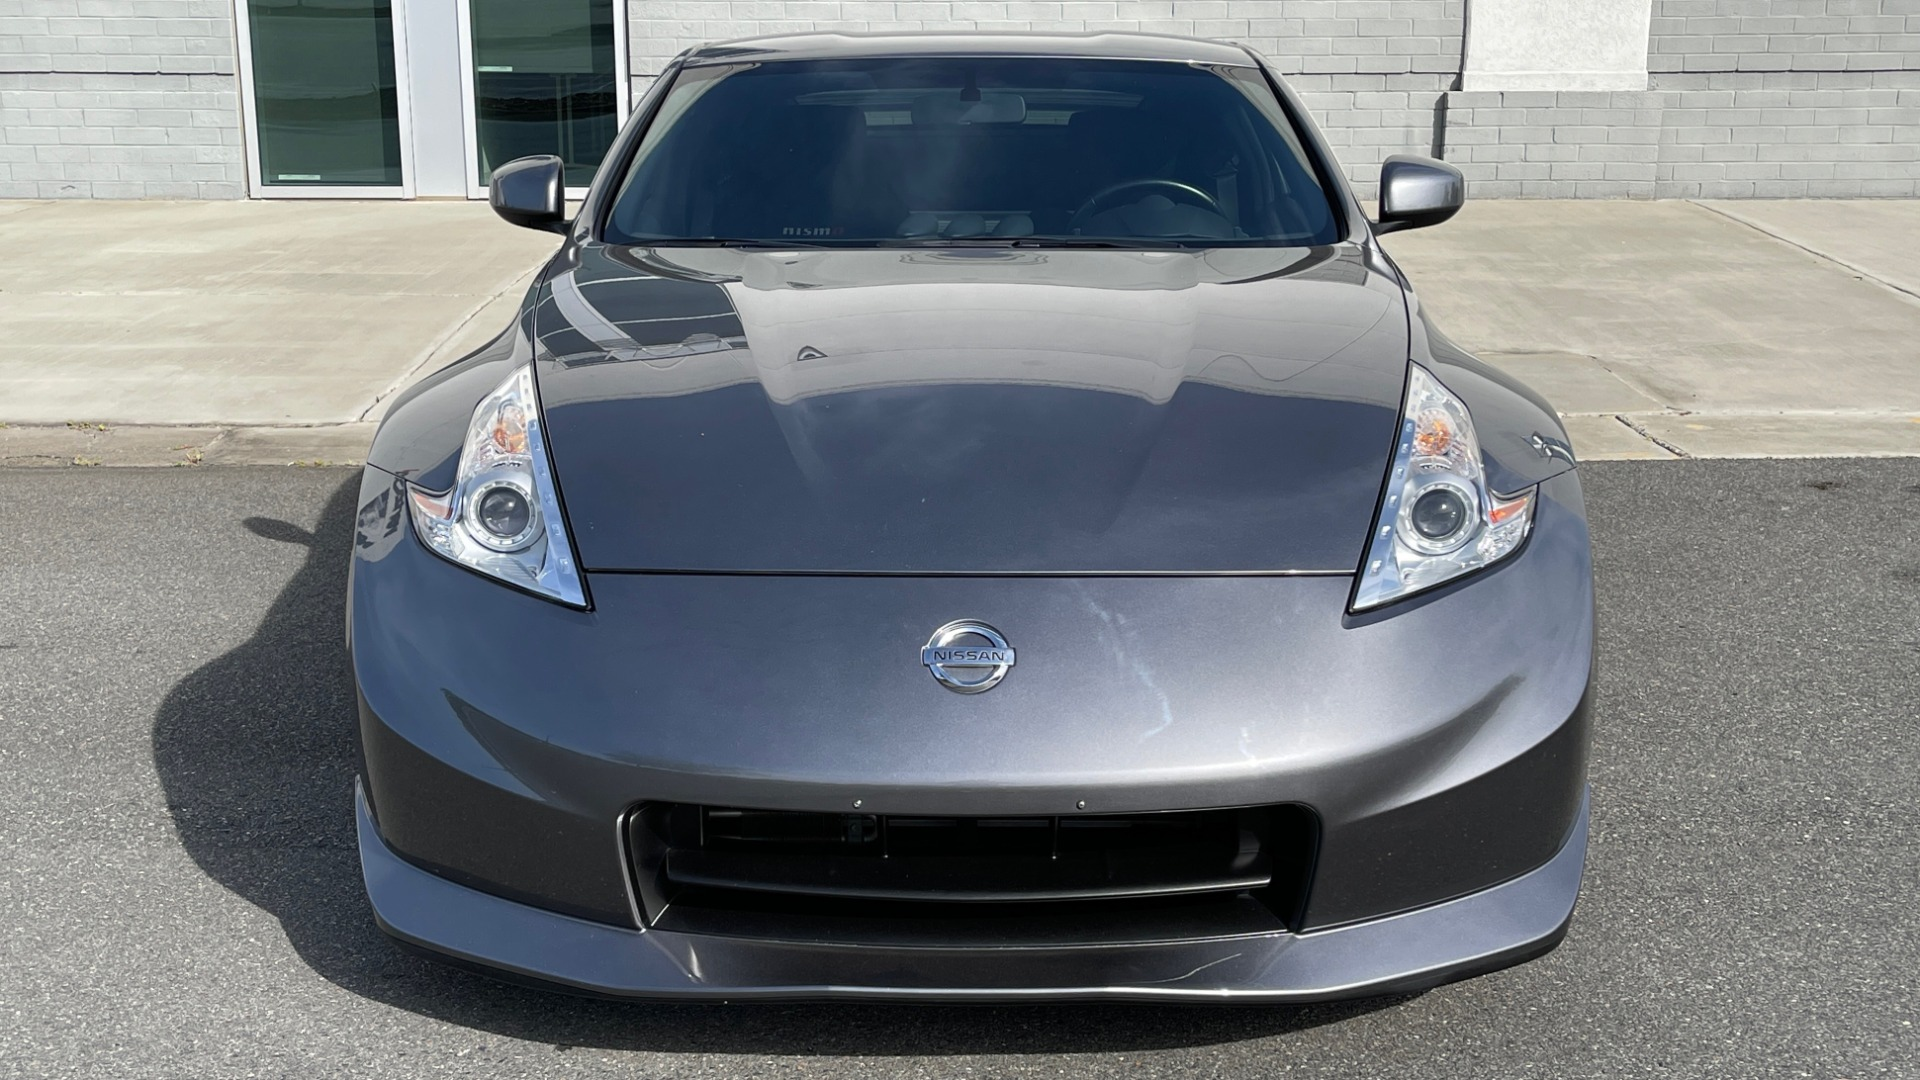 Used 2011 Nissan 370Z NISMO COUPE / 3.7L V6 / 6-SPD MAN / AUTO CLIMATE CONTROL for sale $32,995 at Formula Imports in Charlotte NC 28227 10